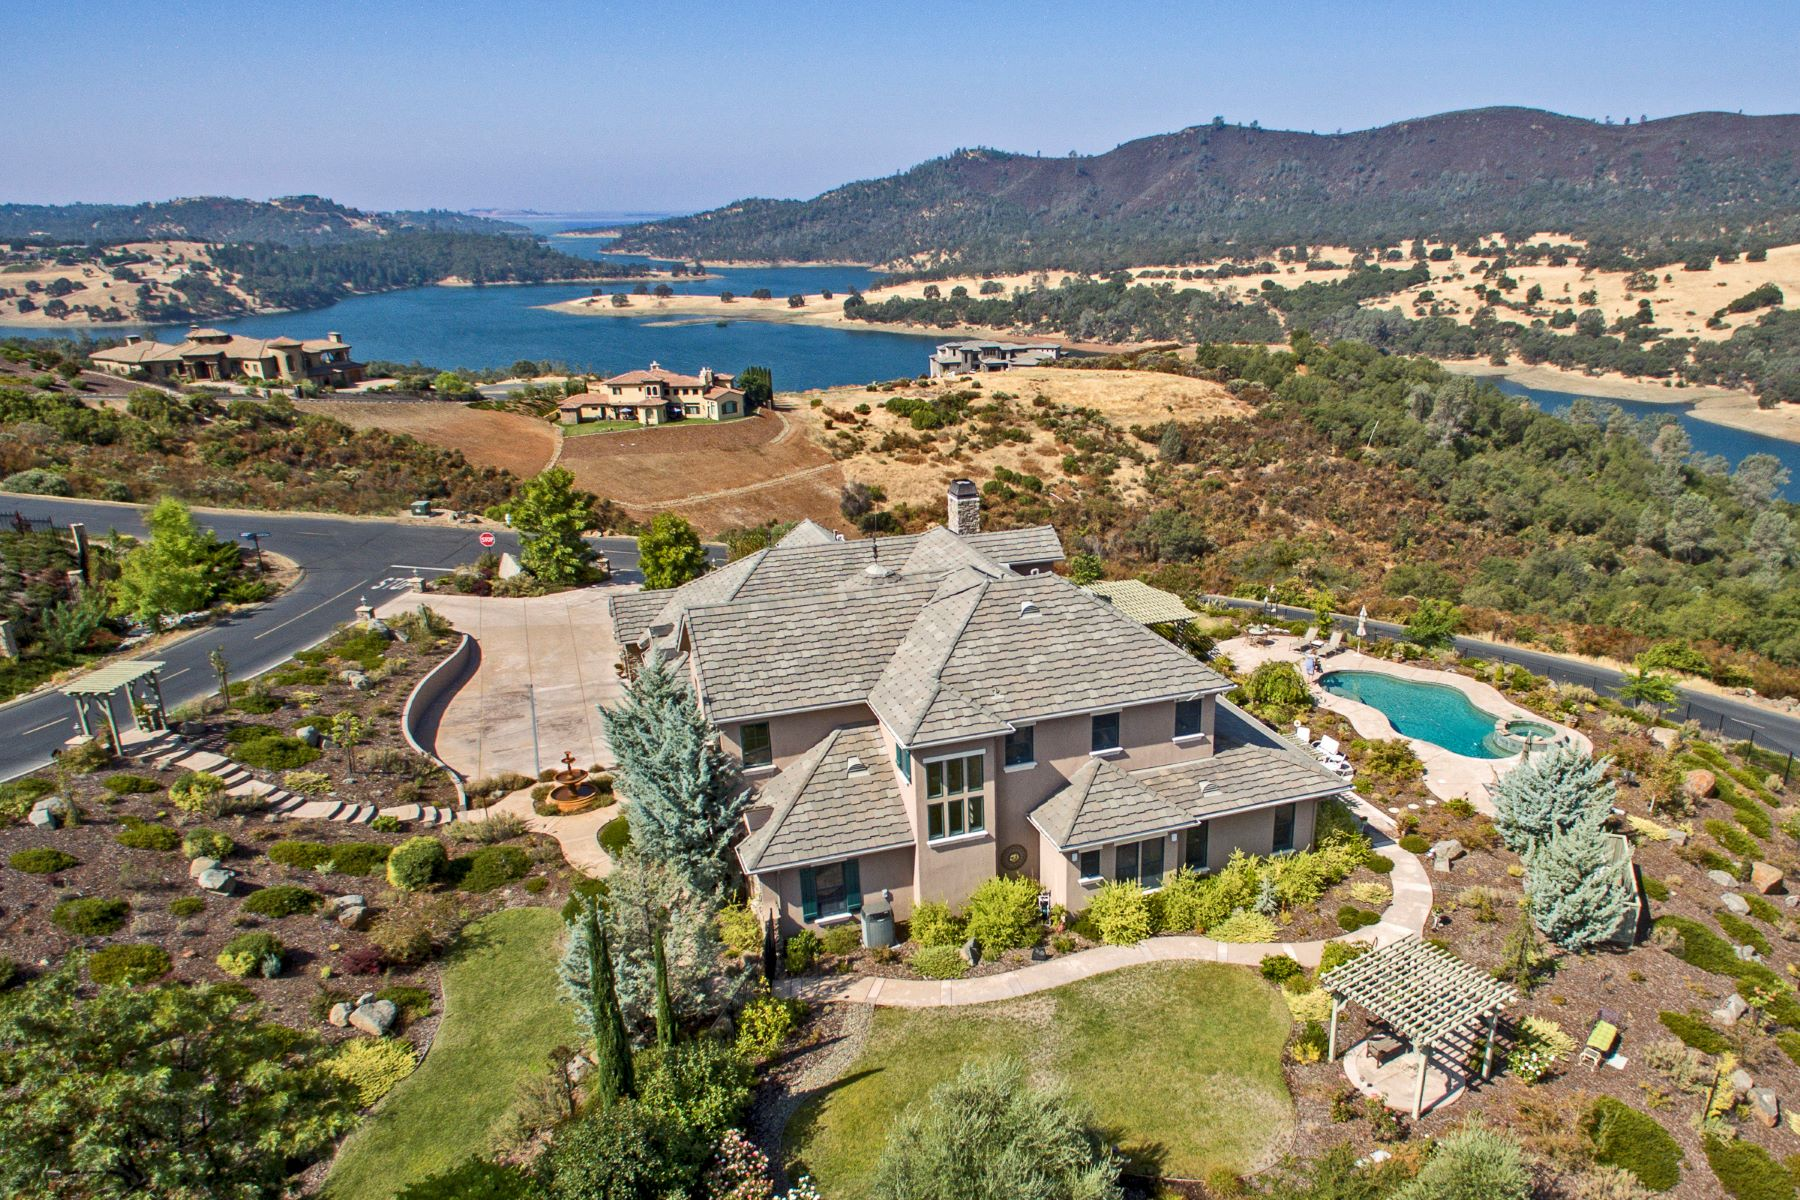 Частный односемейный дом для того Продажа на Extraordinary Resort-like Country French Estate with breathtaking lake views 2011 Chateau Montelana Drive El Dorado Hills, Калифорния 95762 Соединенные Штаты